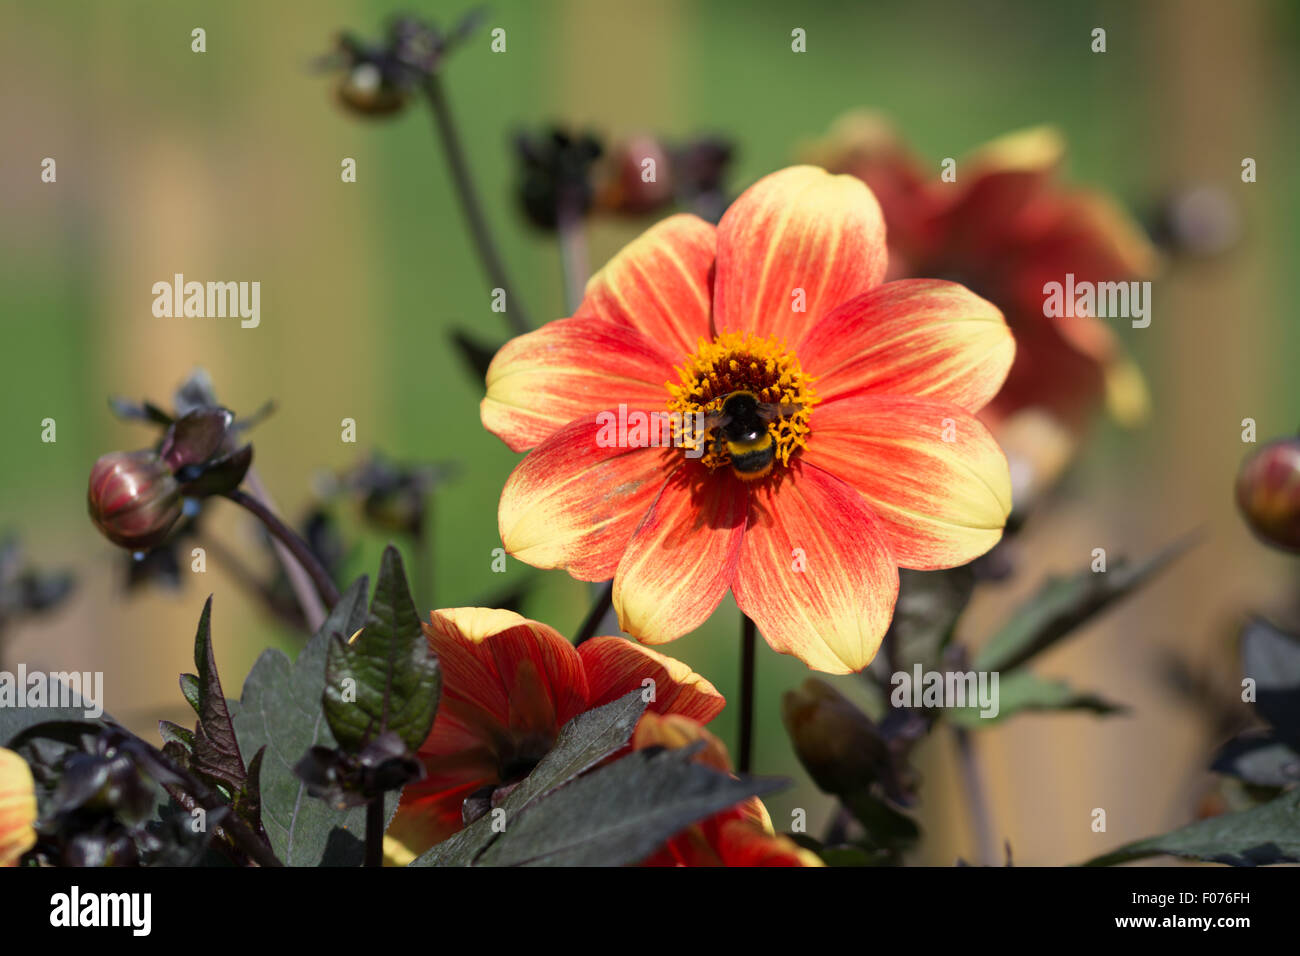 Dahlia flower revive Red and Orange single - Stock Image